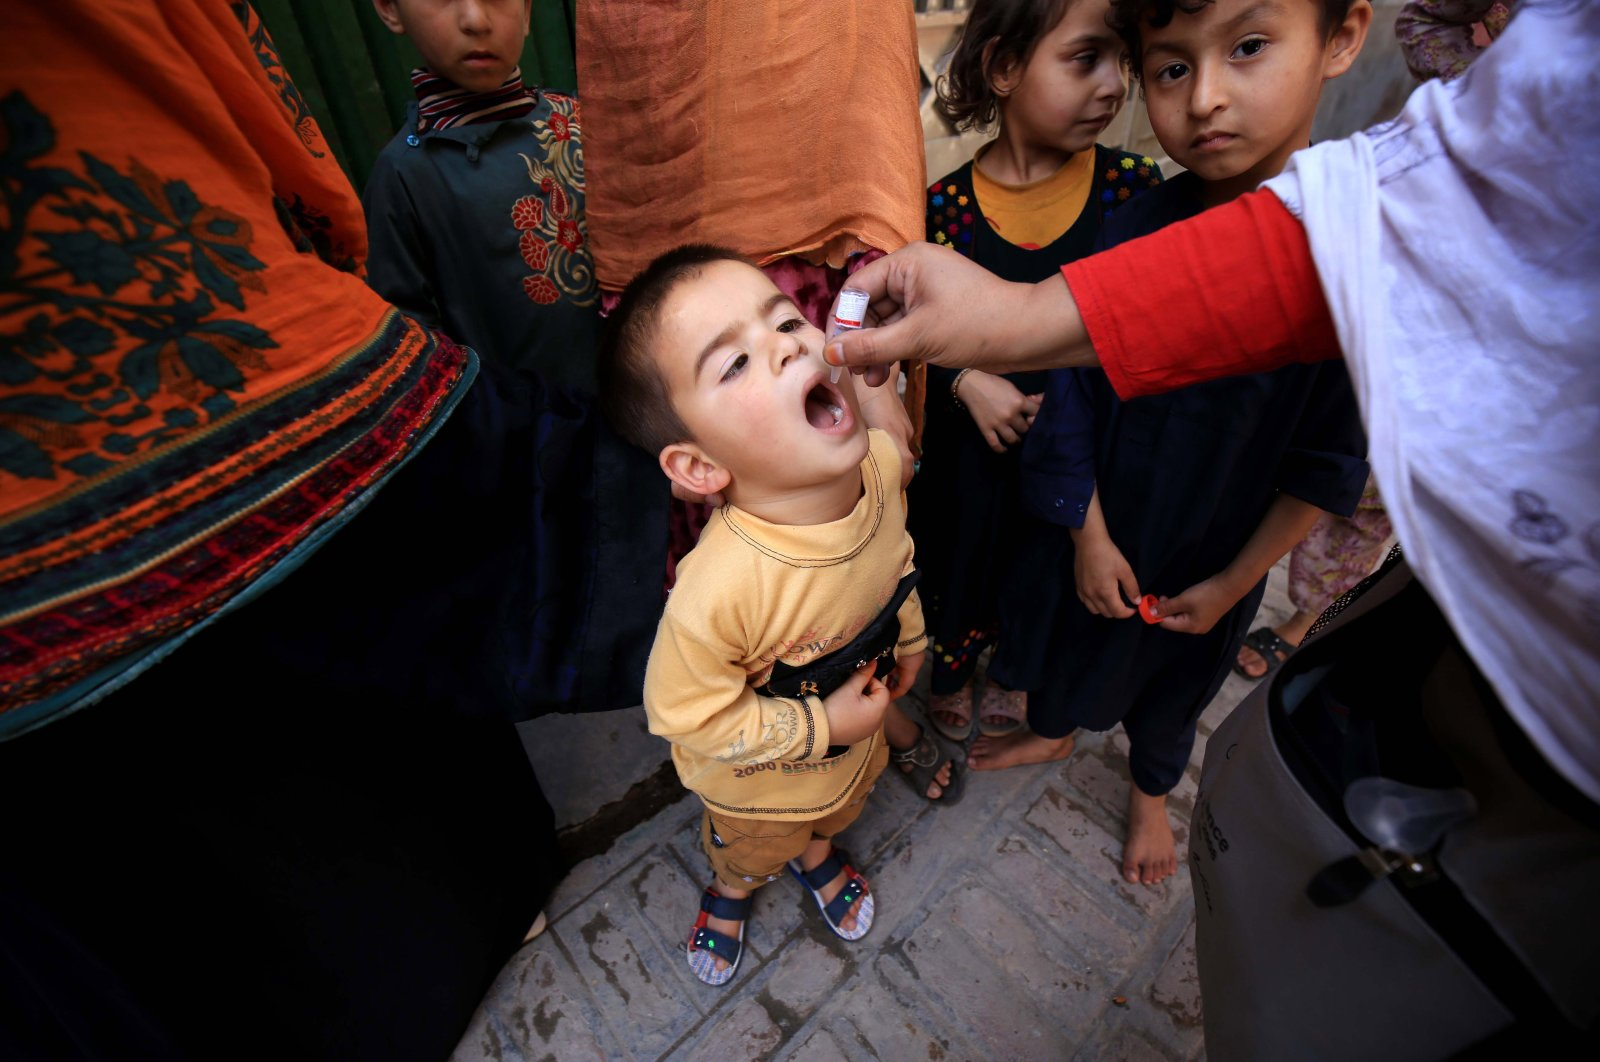 A health worker administers a polio vaccine to a child during a door-to-door polio vaccination campaign in Peshawar, Pakistan, March 29, 2021. (EPA Photo)